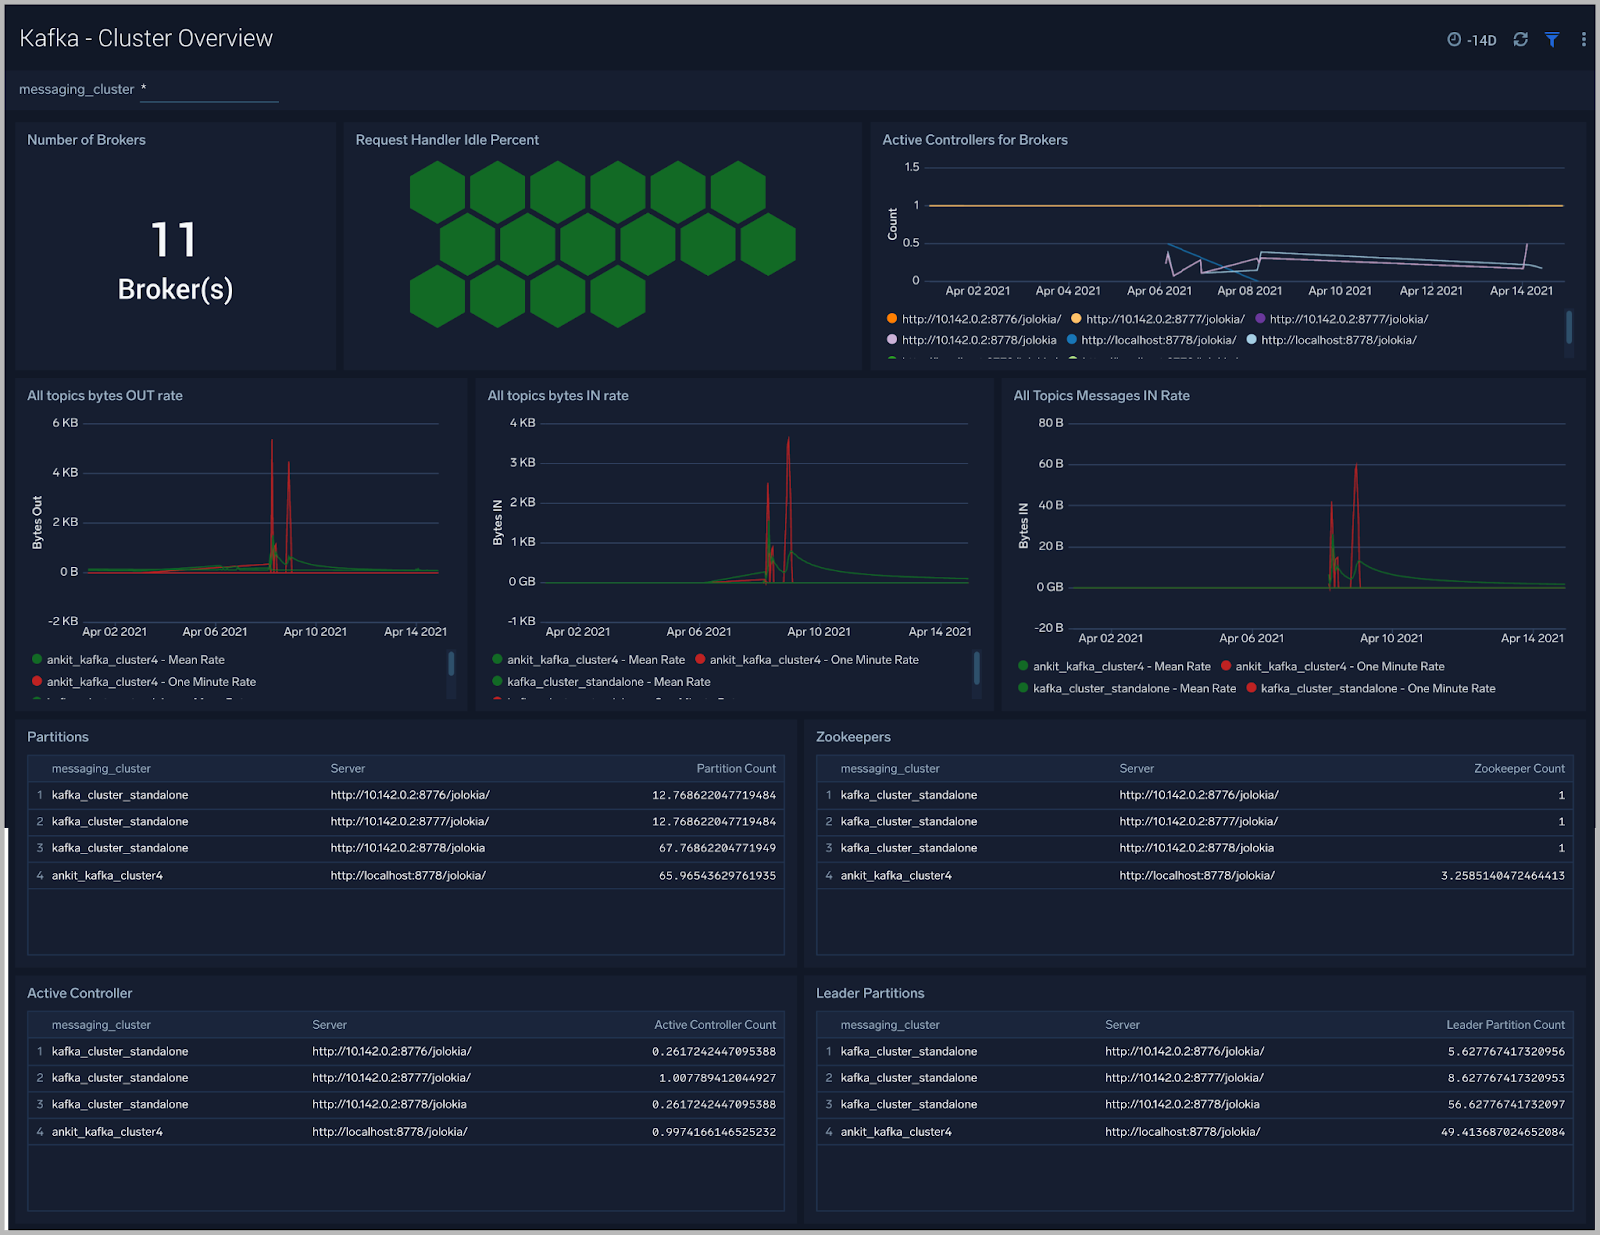 Monitoring Apache Kafka Clusters - Cluster Overview